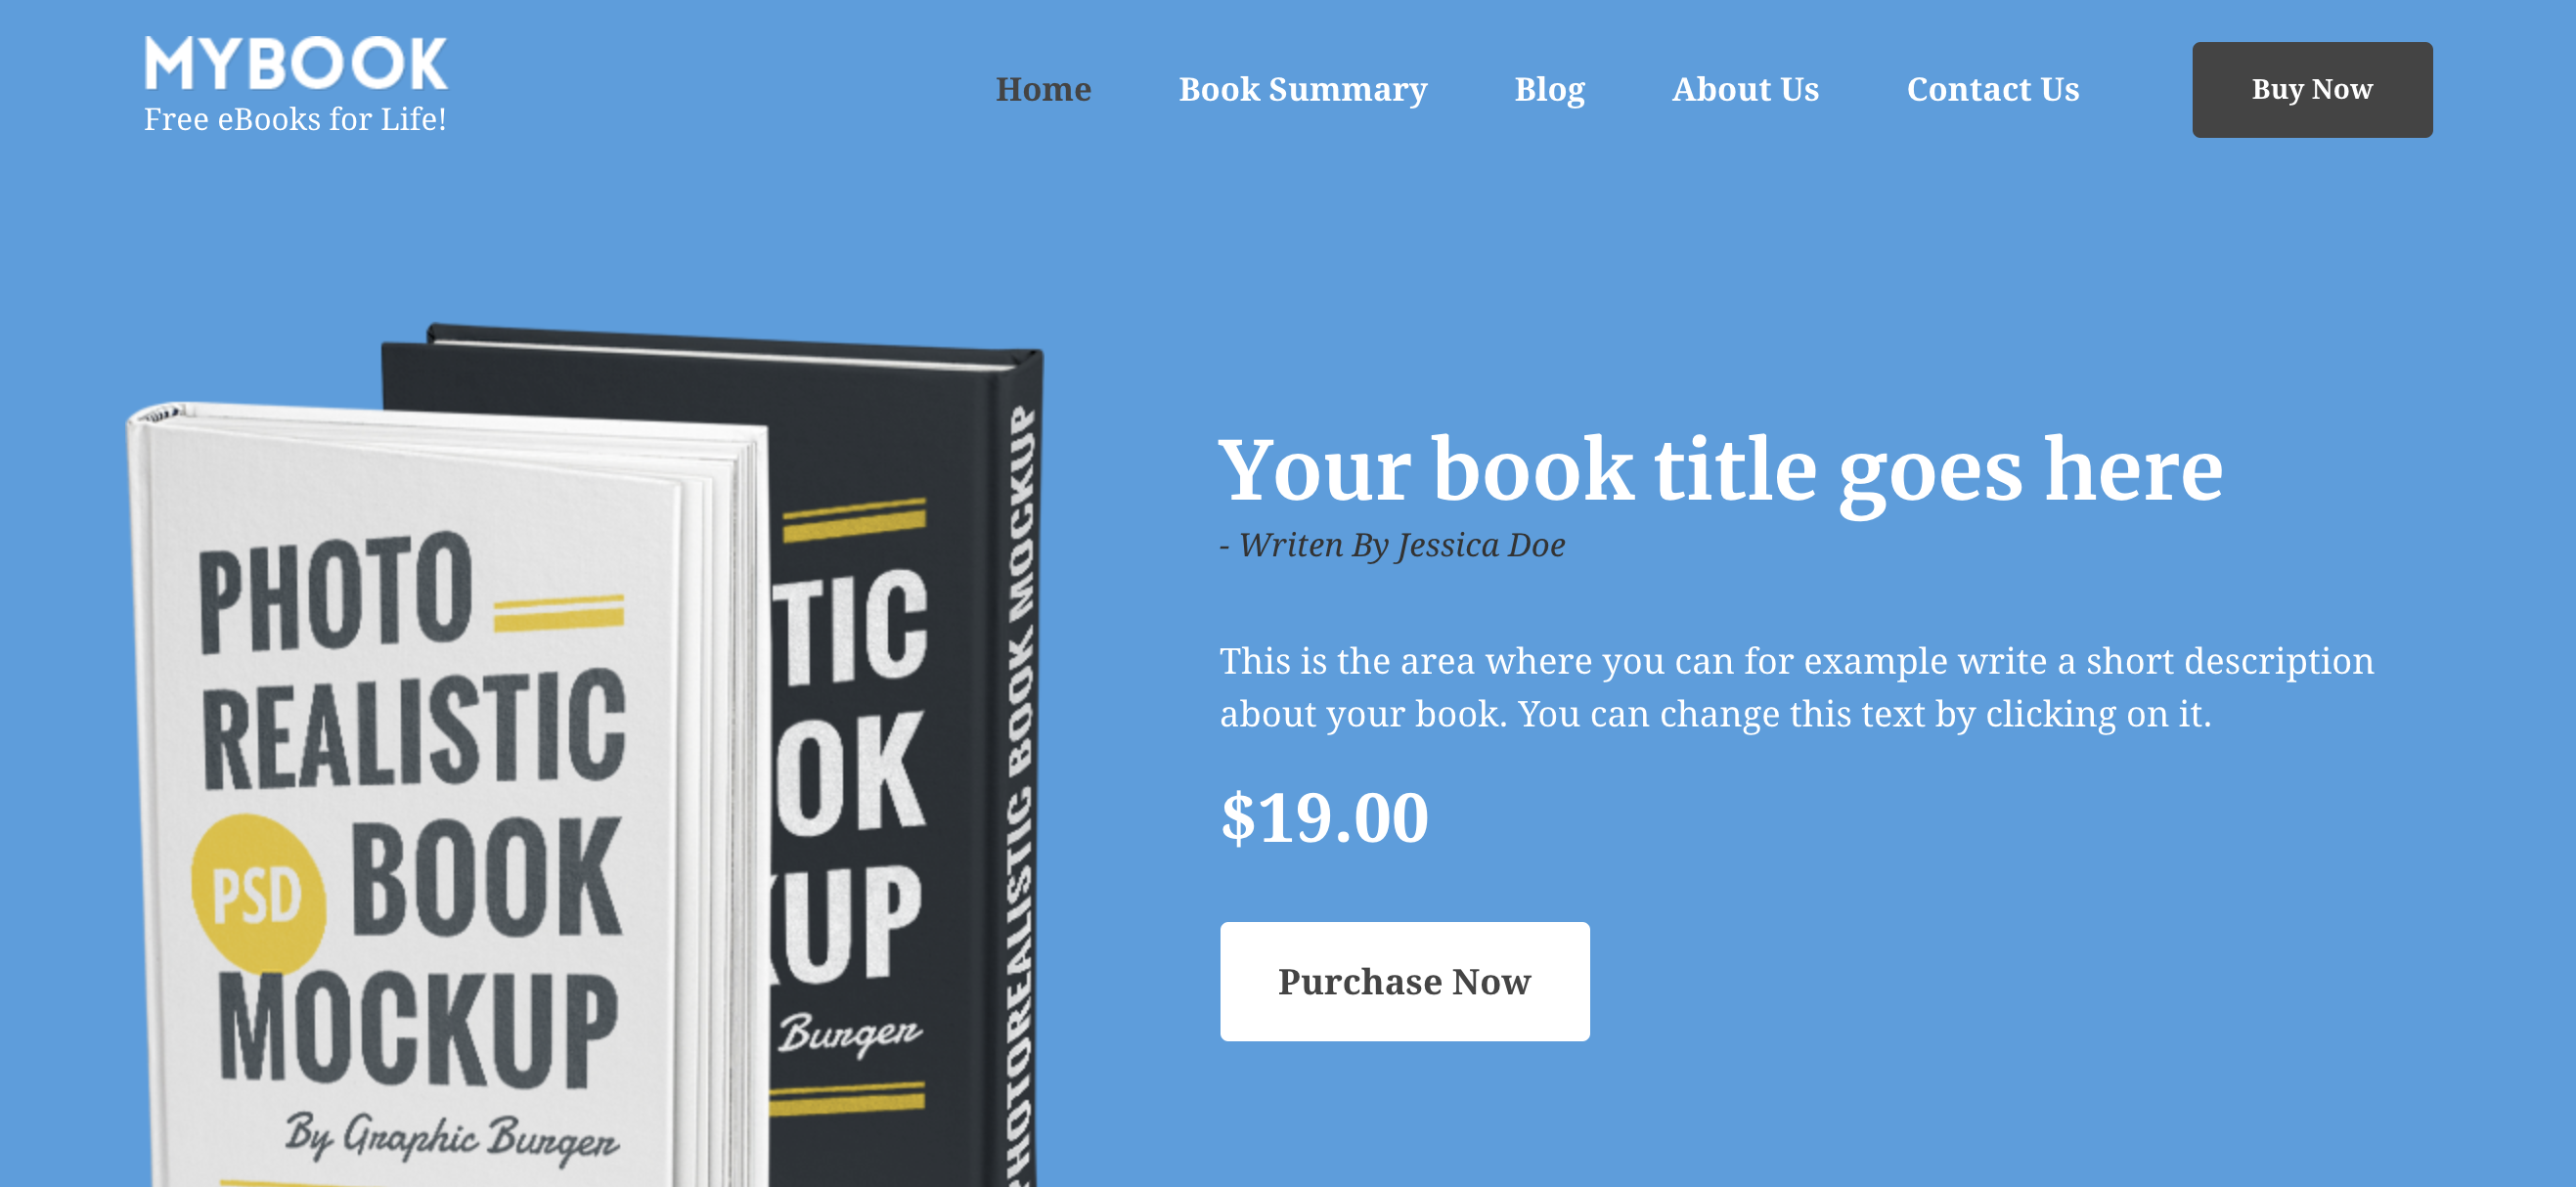 MyBook book launch wordpress theme website.png